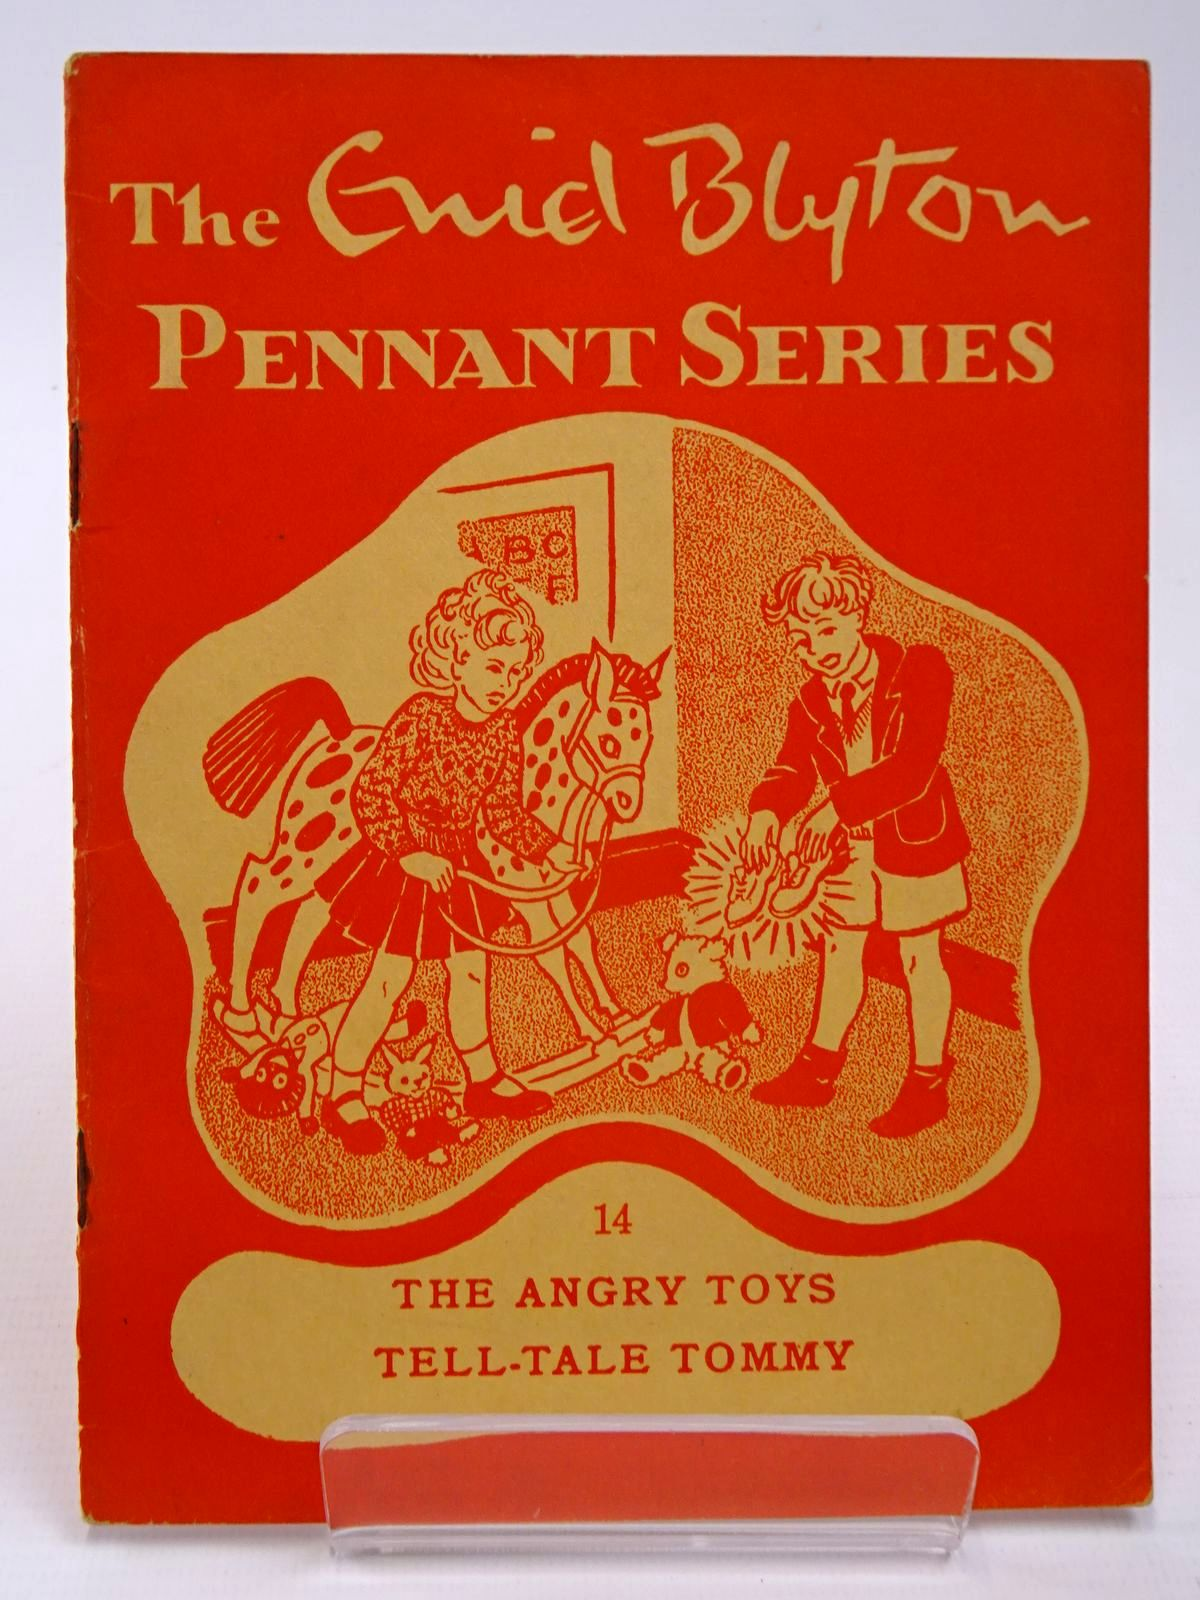 Photo of THE ENID BLYTON PENNANT SERIES No. 14 THE ANGRY TOYS / TELL-TALE TOMMY- Stock Number: 2130520